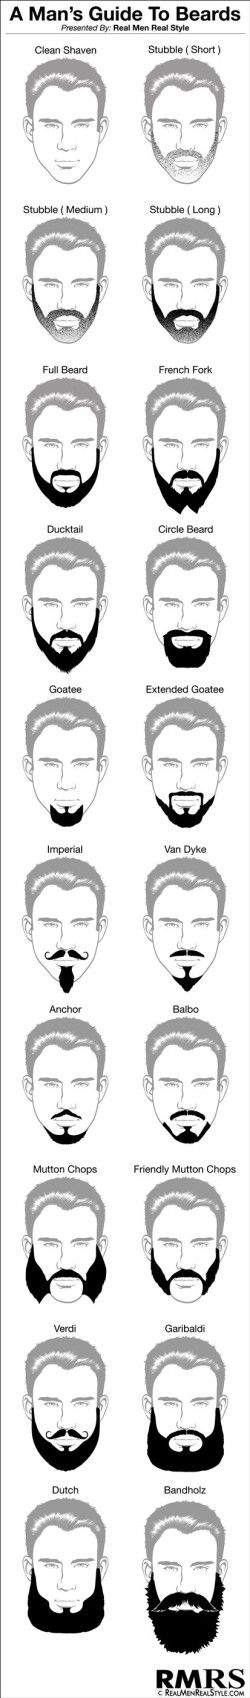 A-Mans-Guide-To-Beard Infographic